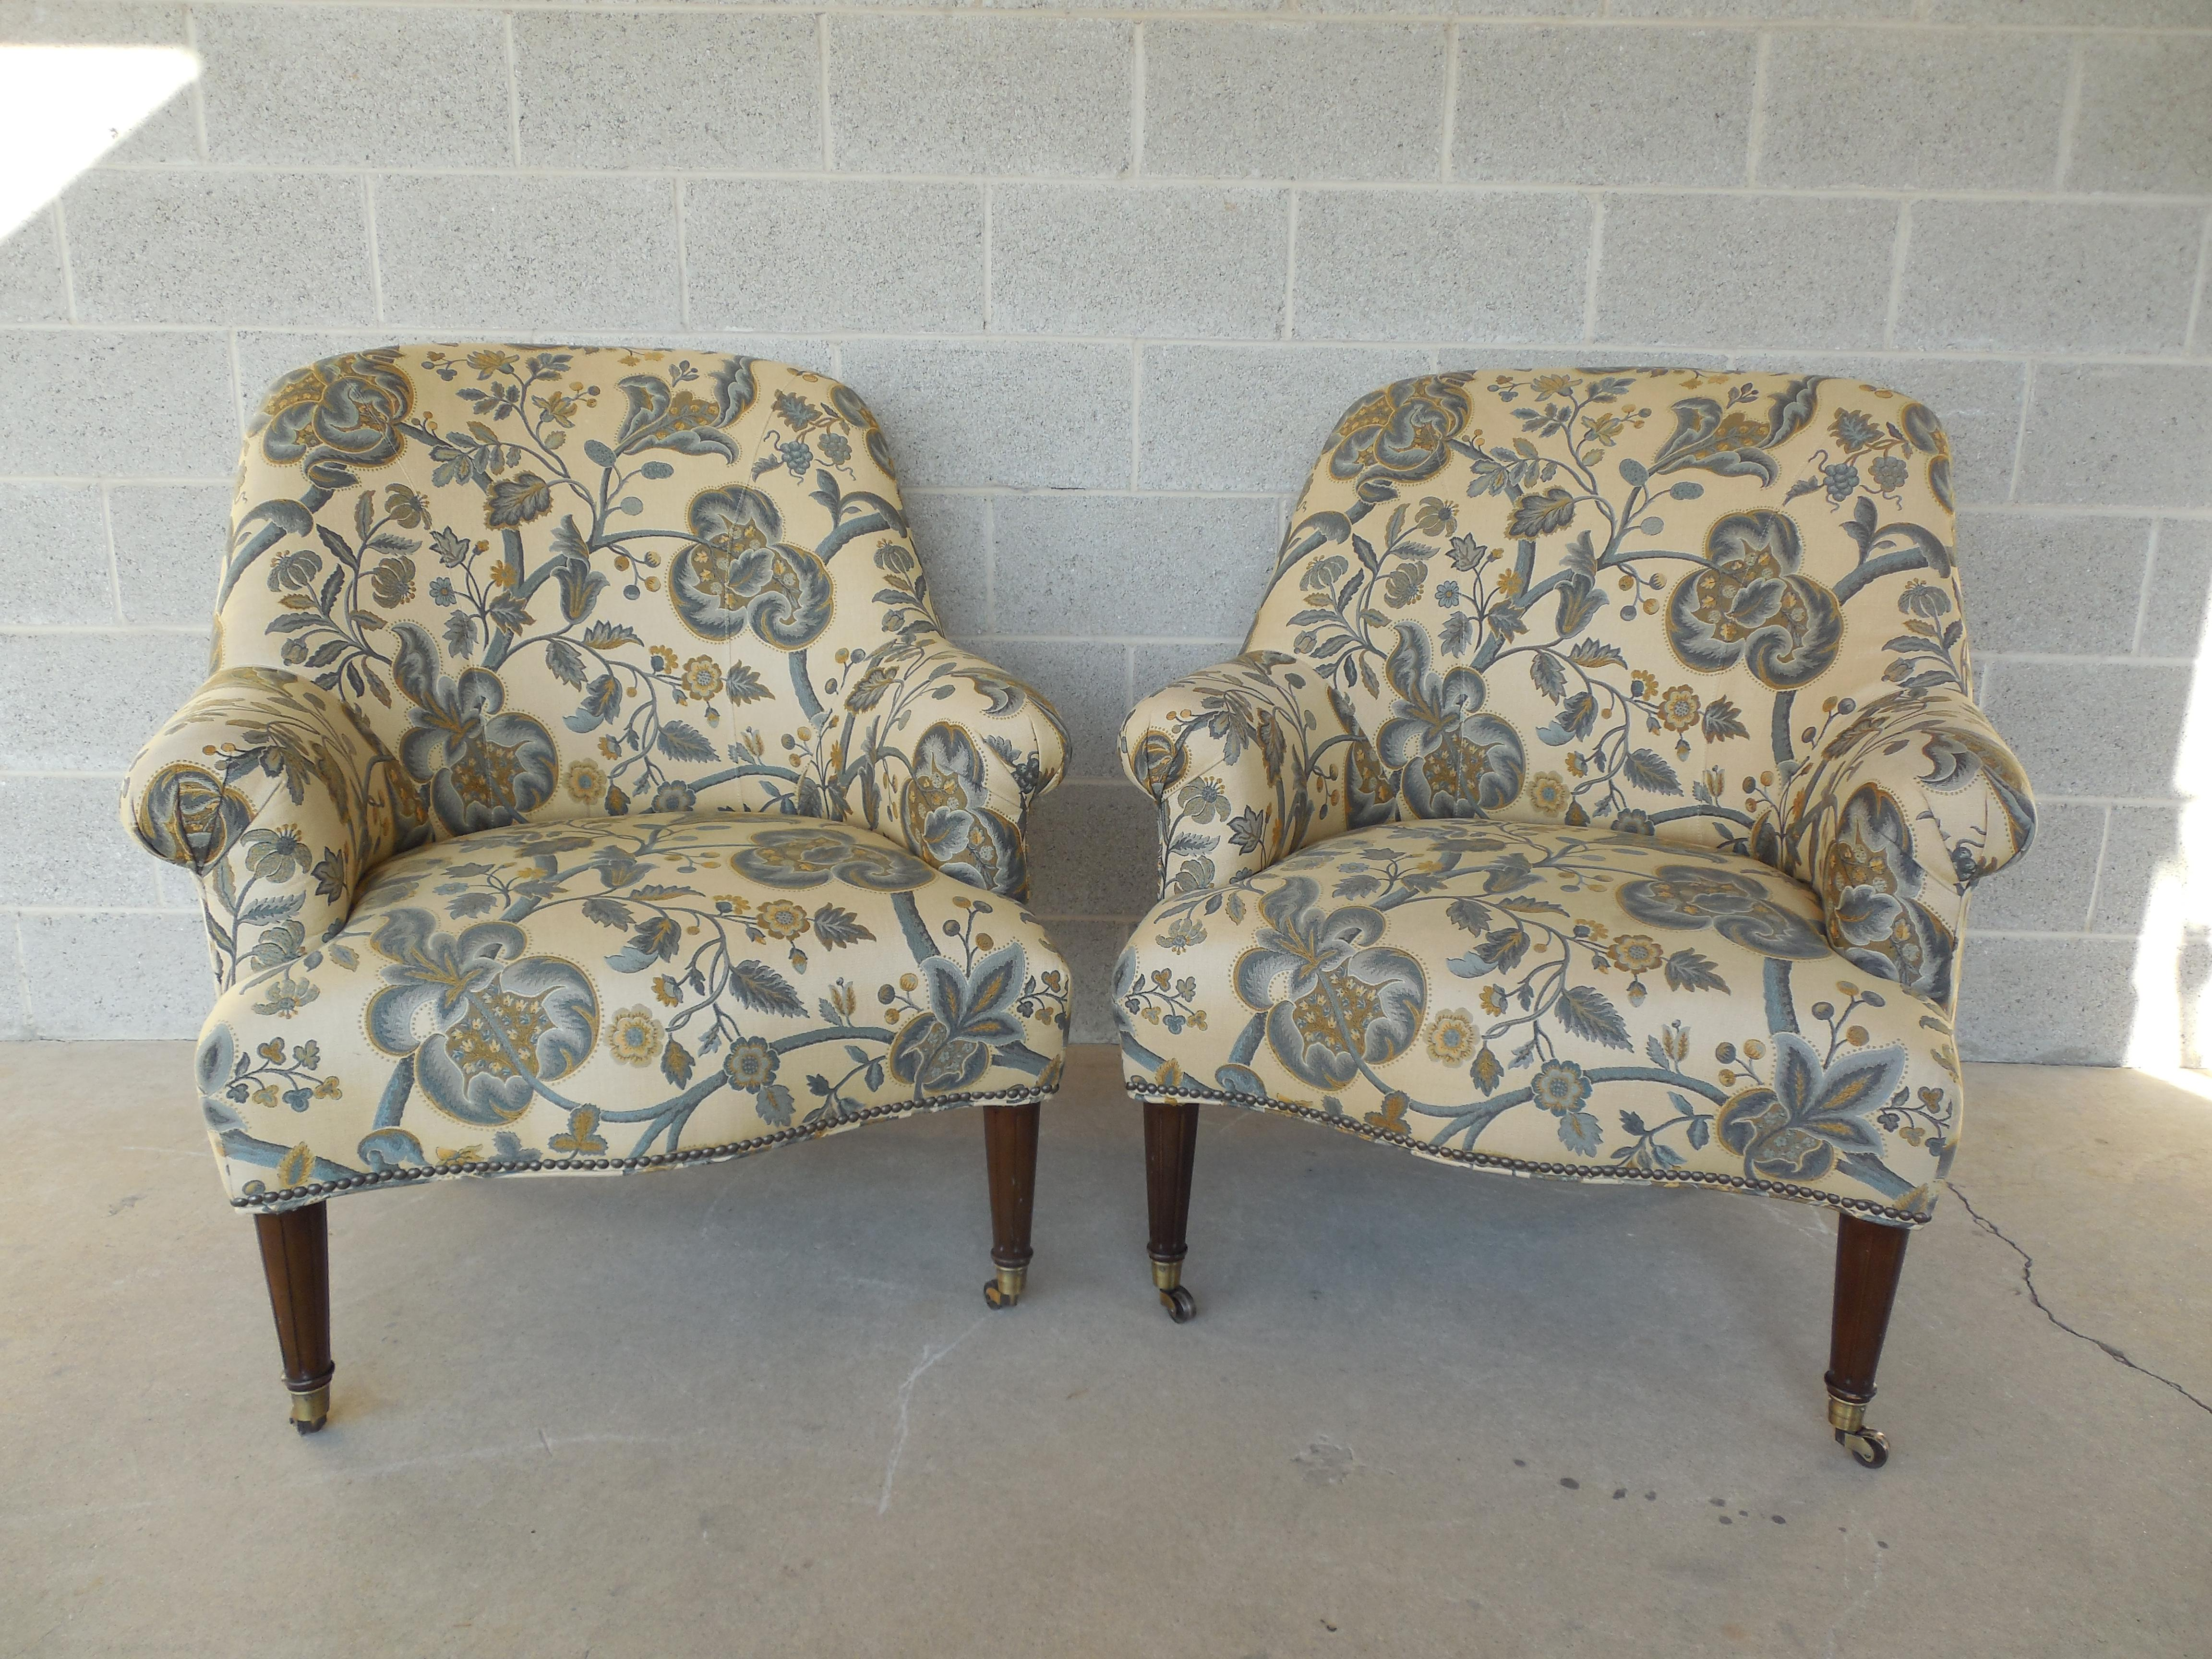 Kravet Furniture Regency Style Accent Club Chairs   A Pair   Image 2 Of 11